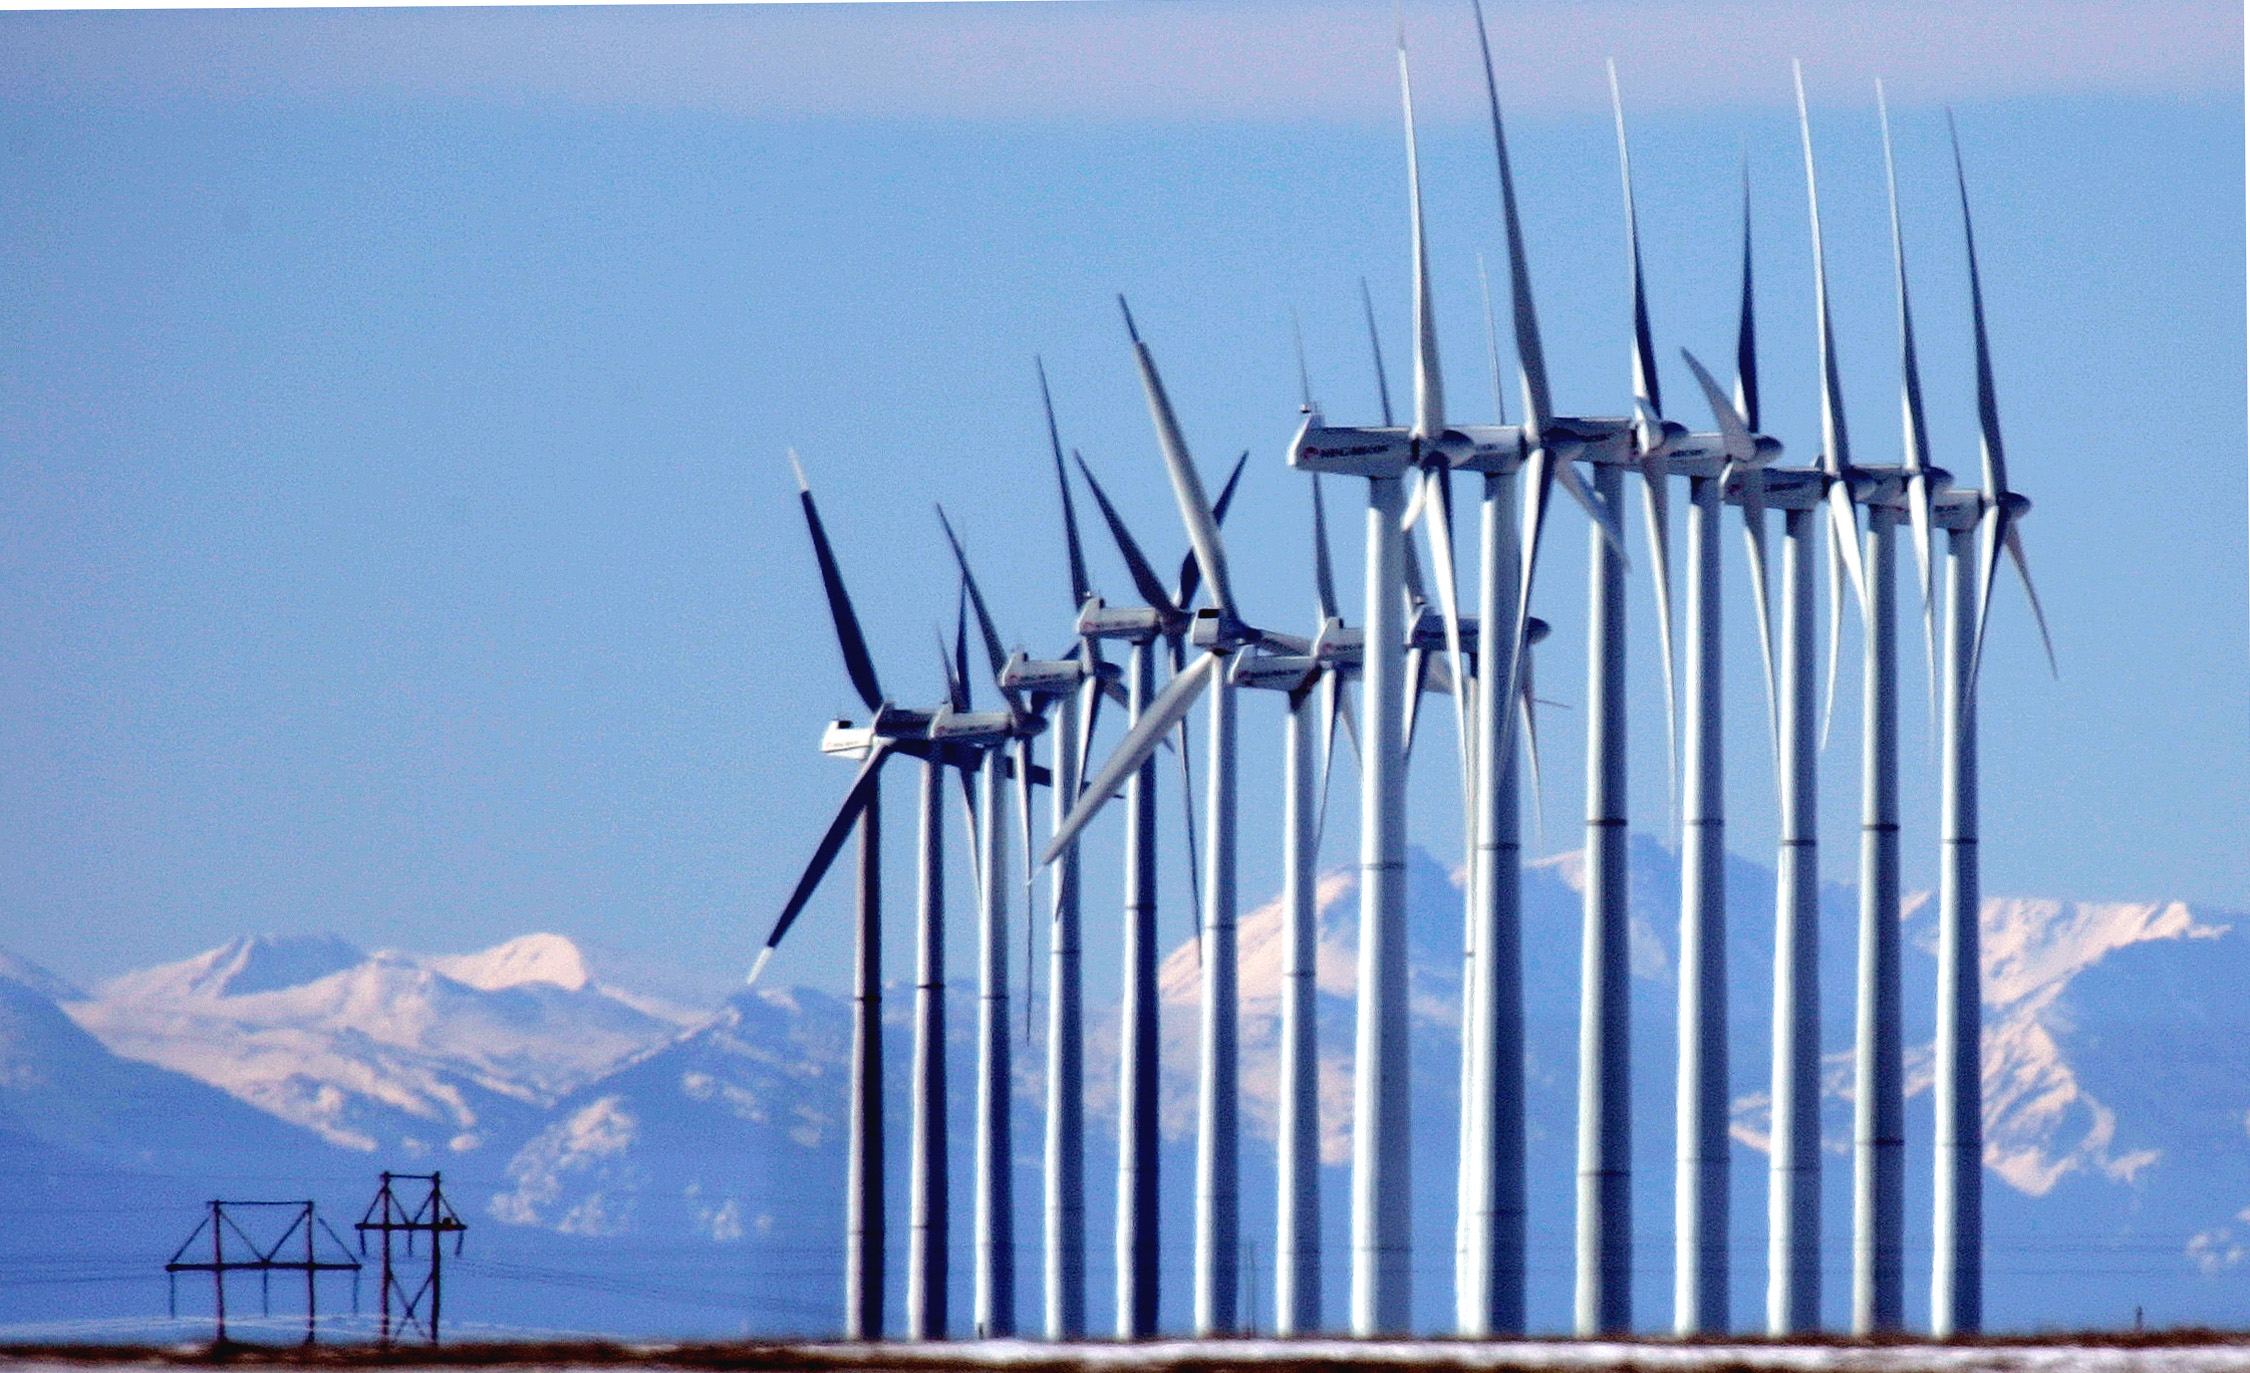 Photo: Wind Turbines With Rocky Mountain Backdrop